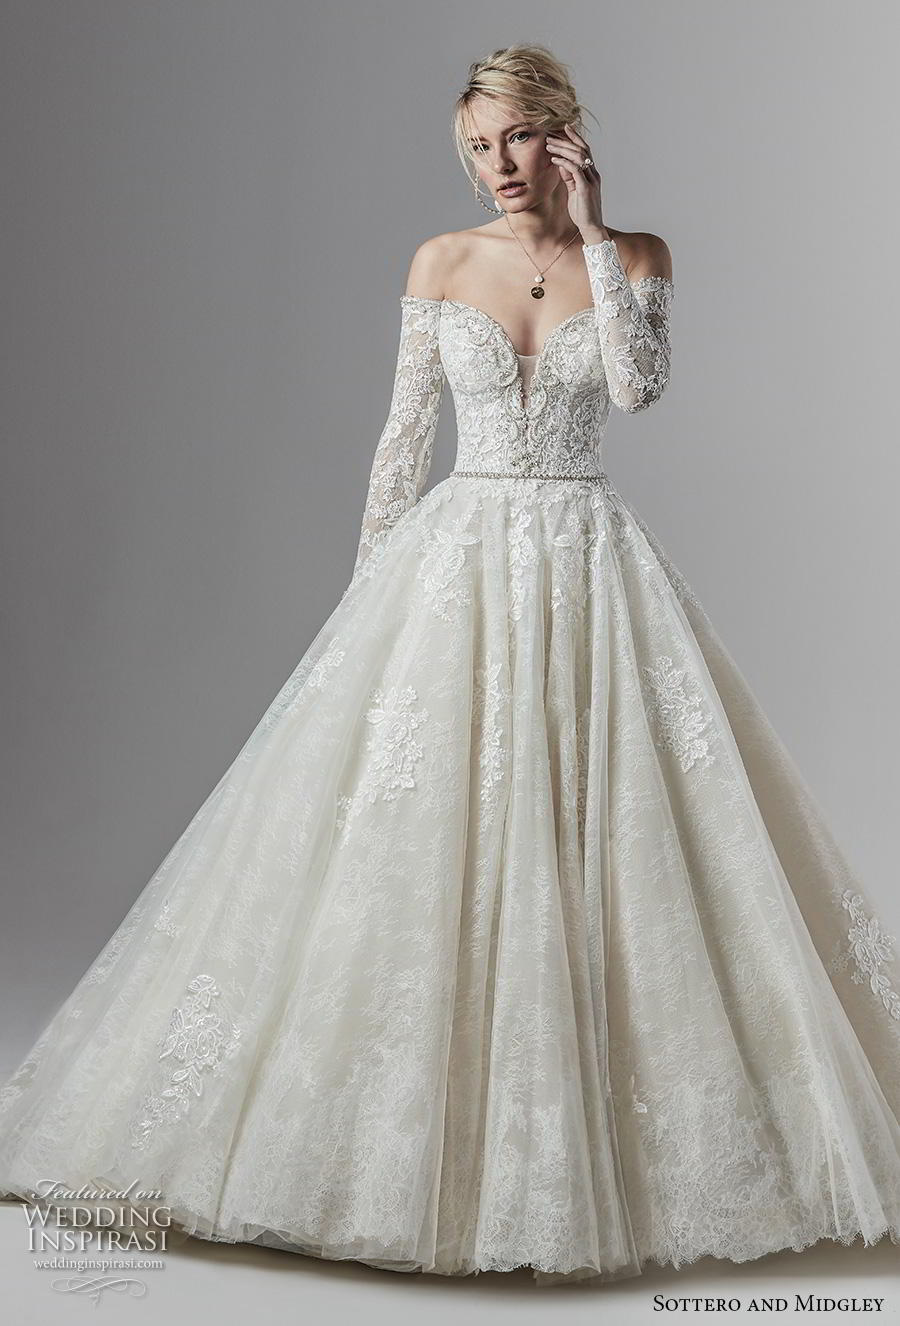 sottero and midgley fall 2019 bridal long sleeves off the shoulder sweetheart neckline heavily embellished bodice princess a  line wedding wedding dress with pockets mid back chapel train (1) mv